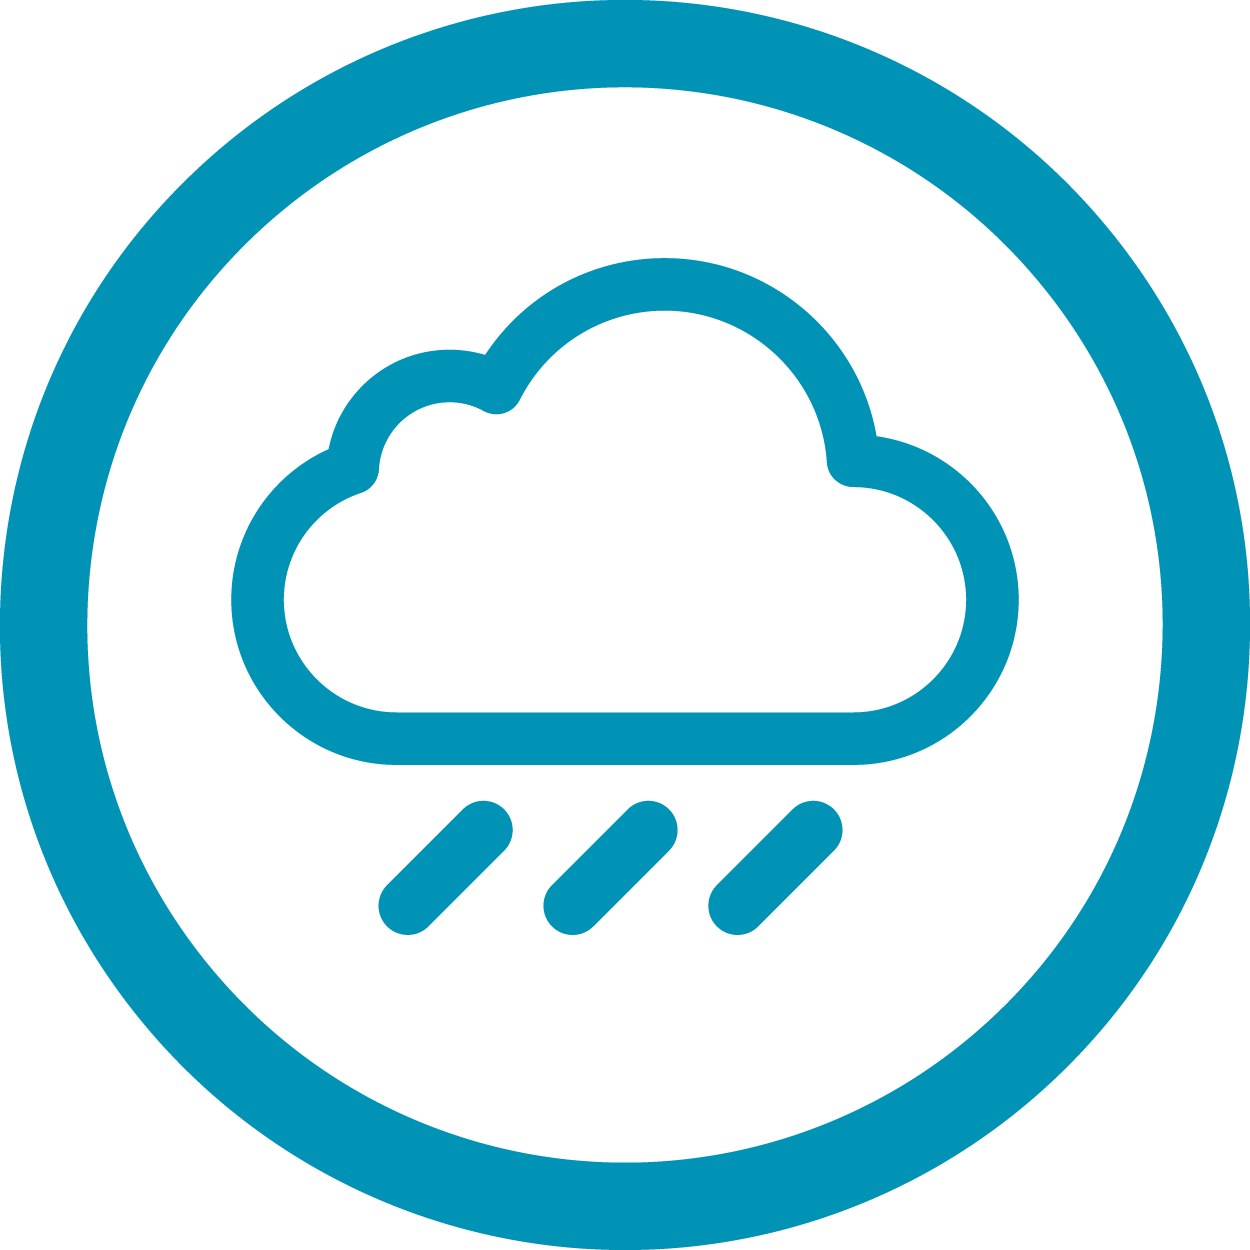 Rain clouds icon